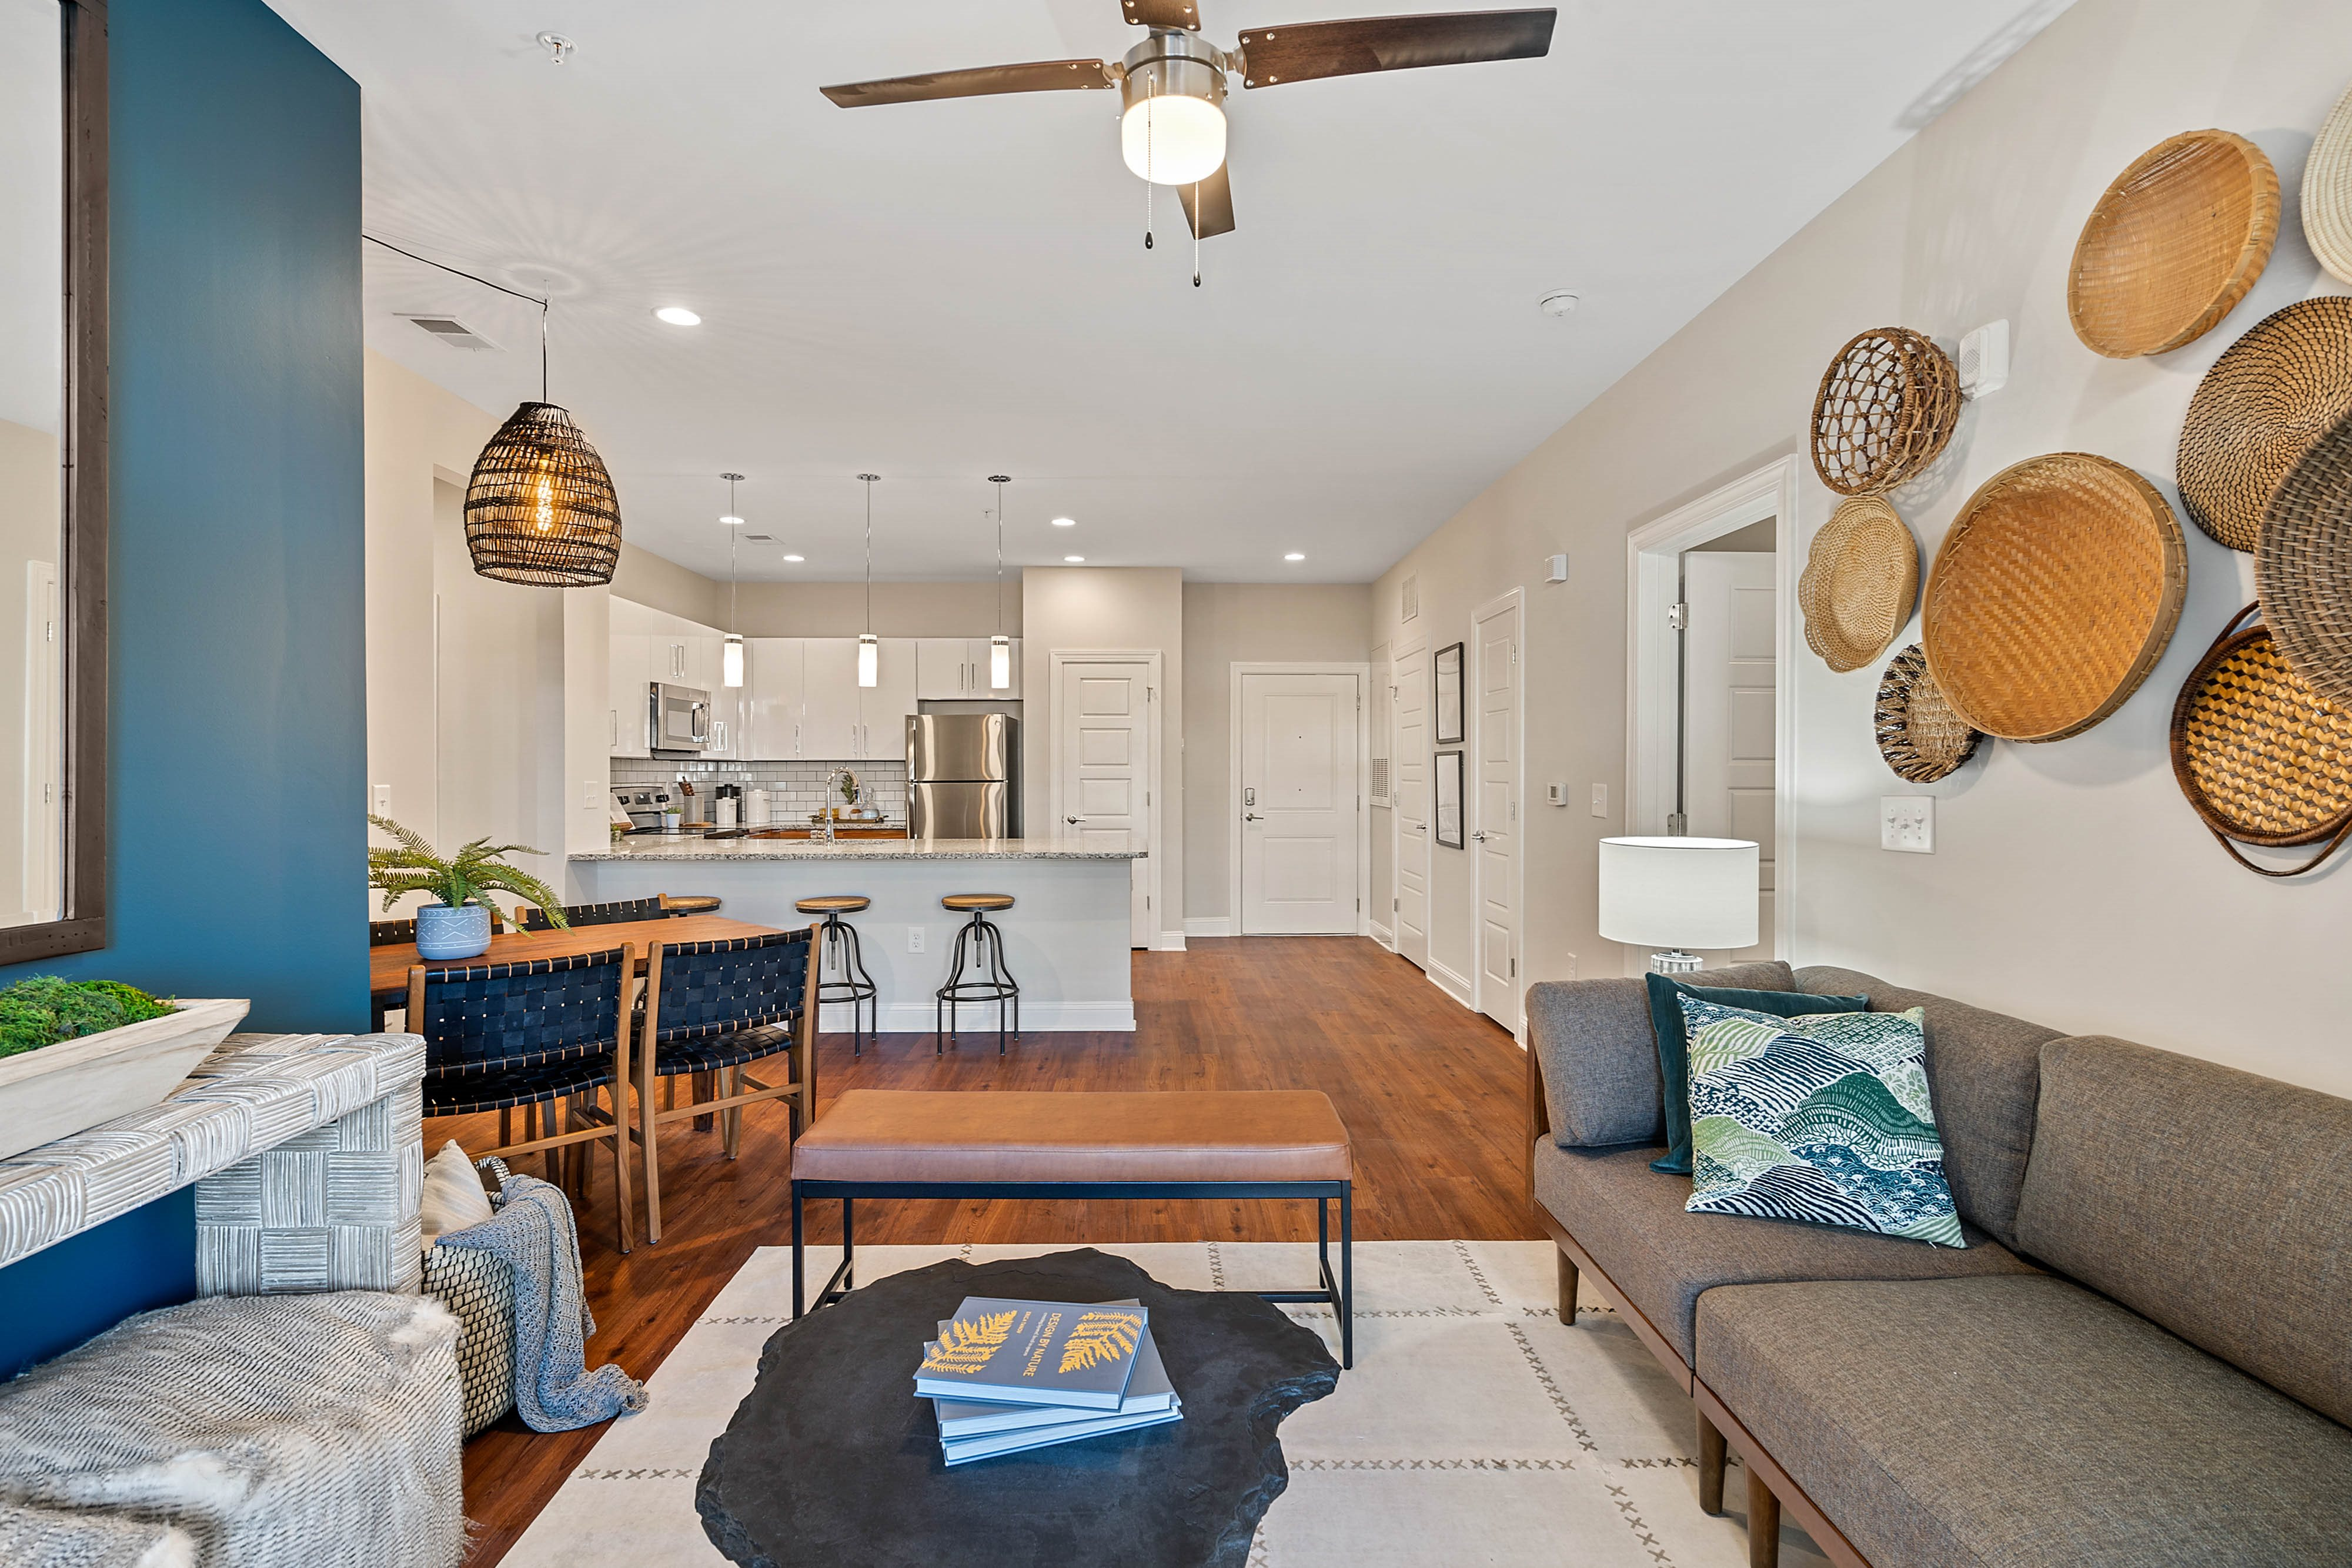 Living room area at Hawthorne at Haywood in Asheville, North Carolina